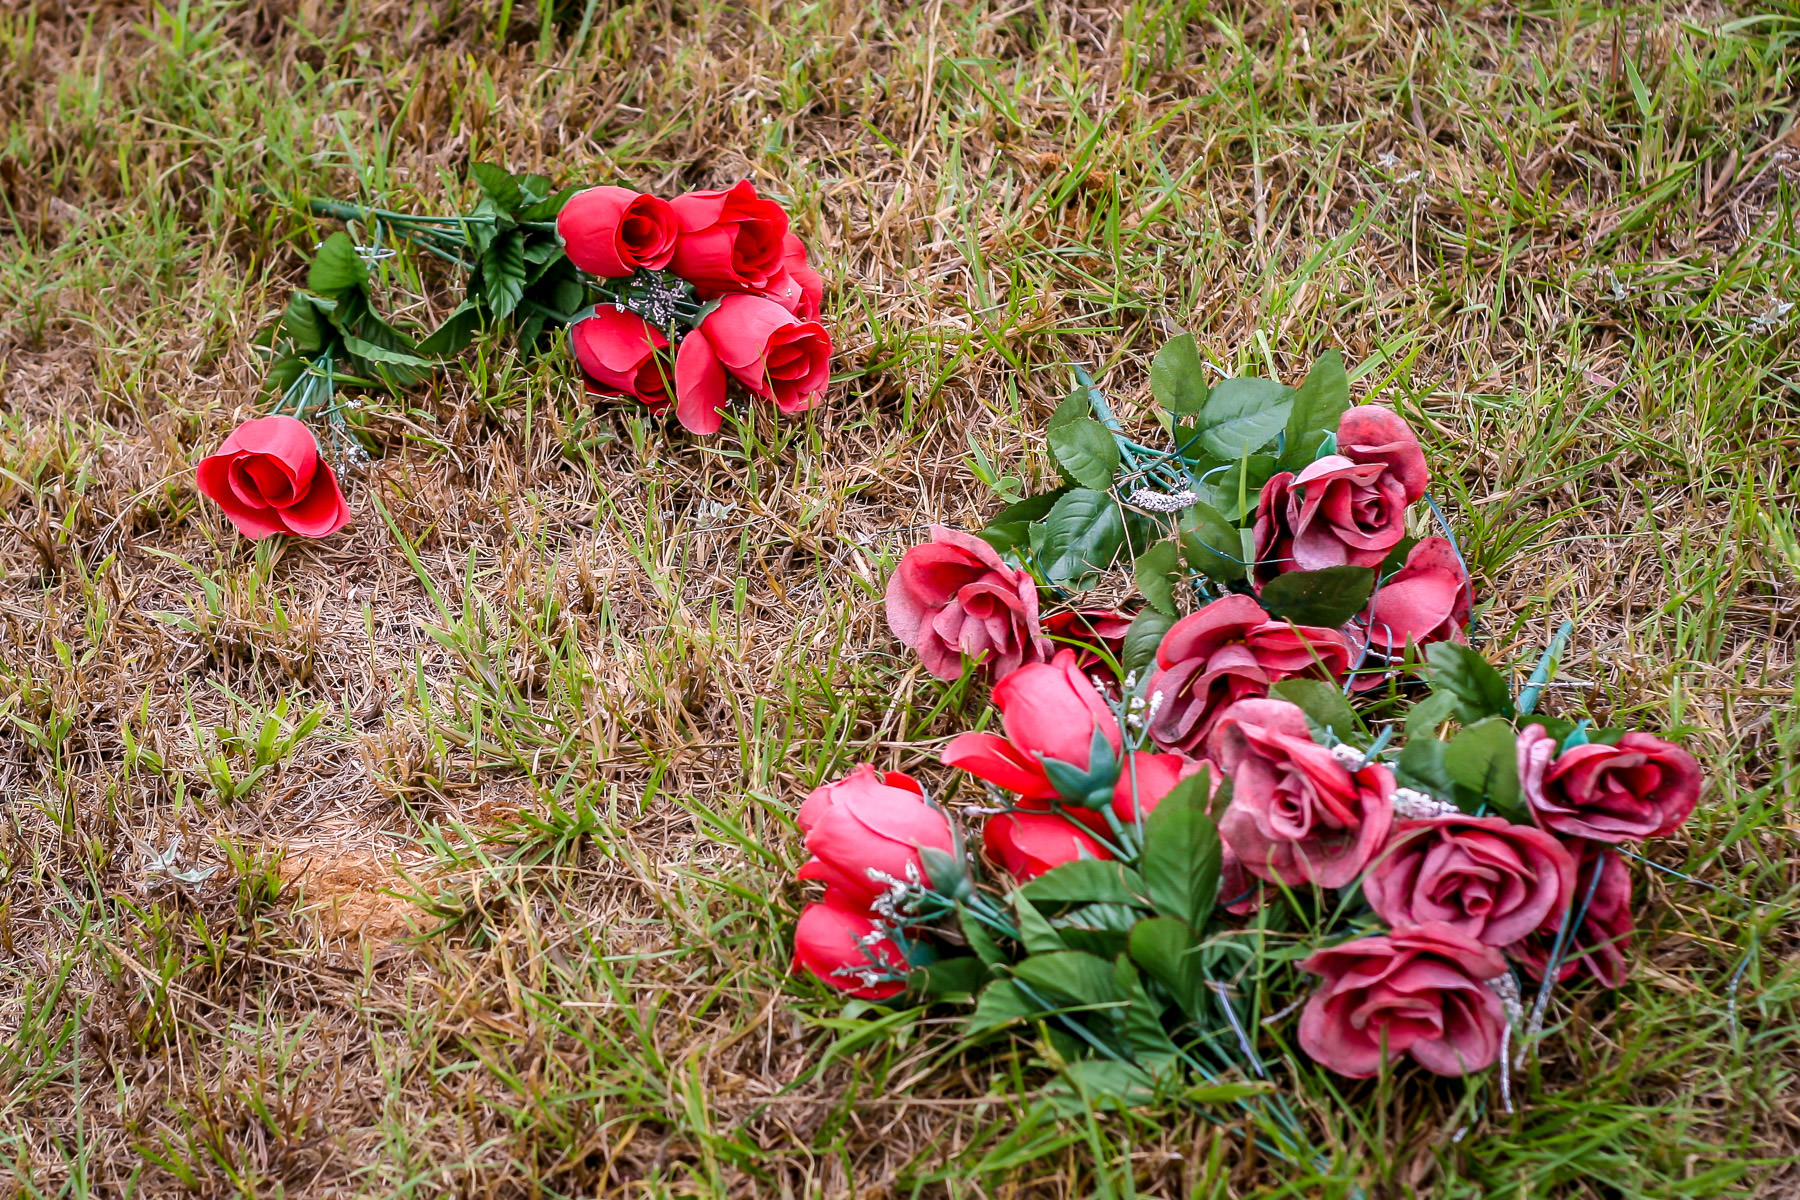 Fake roses strewn about Minter's Chapel Cemetery, DFW Airport, Texas.